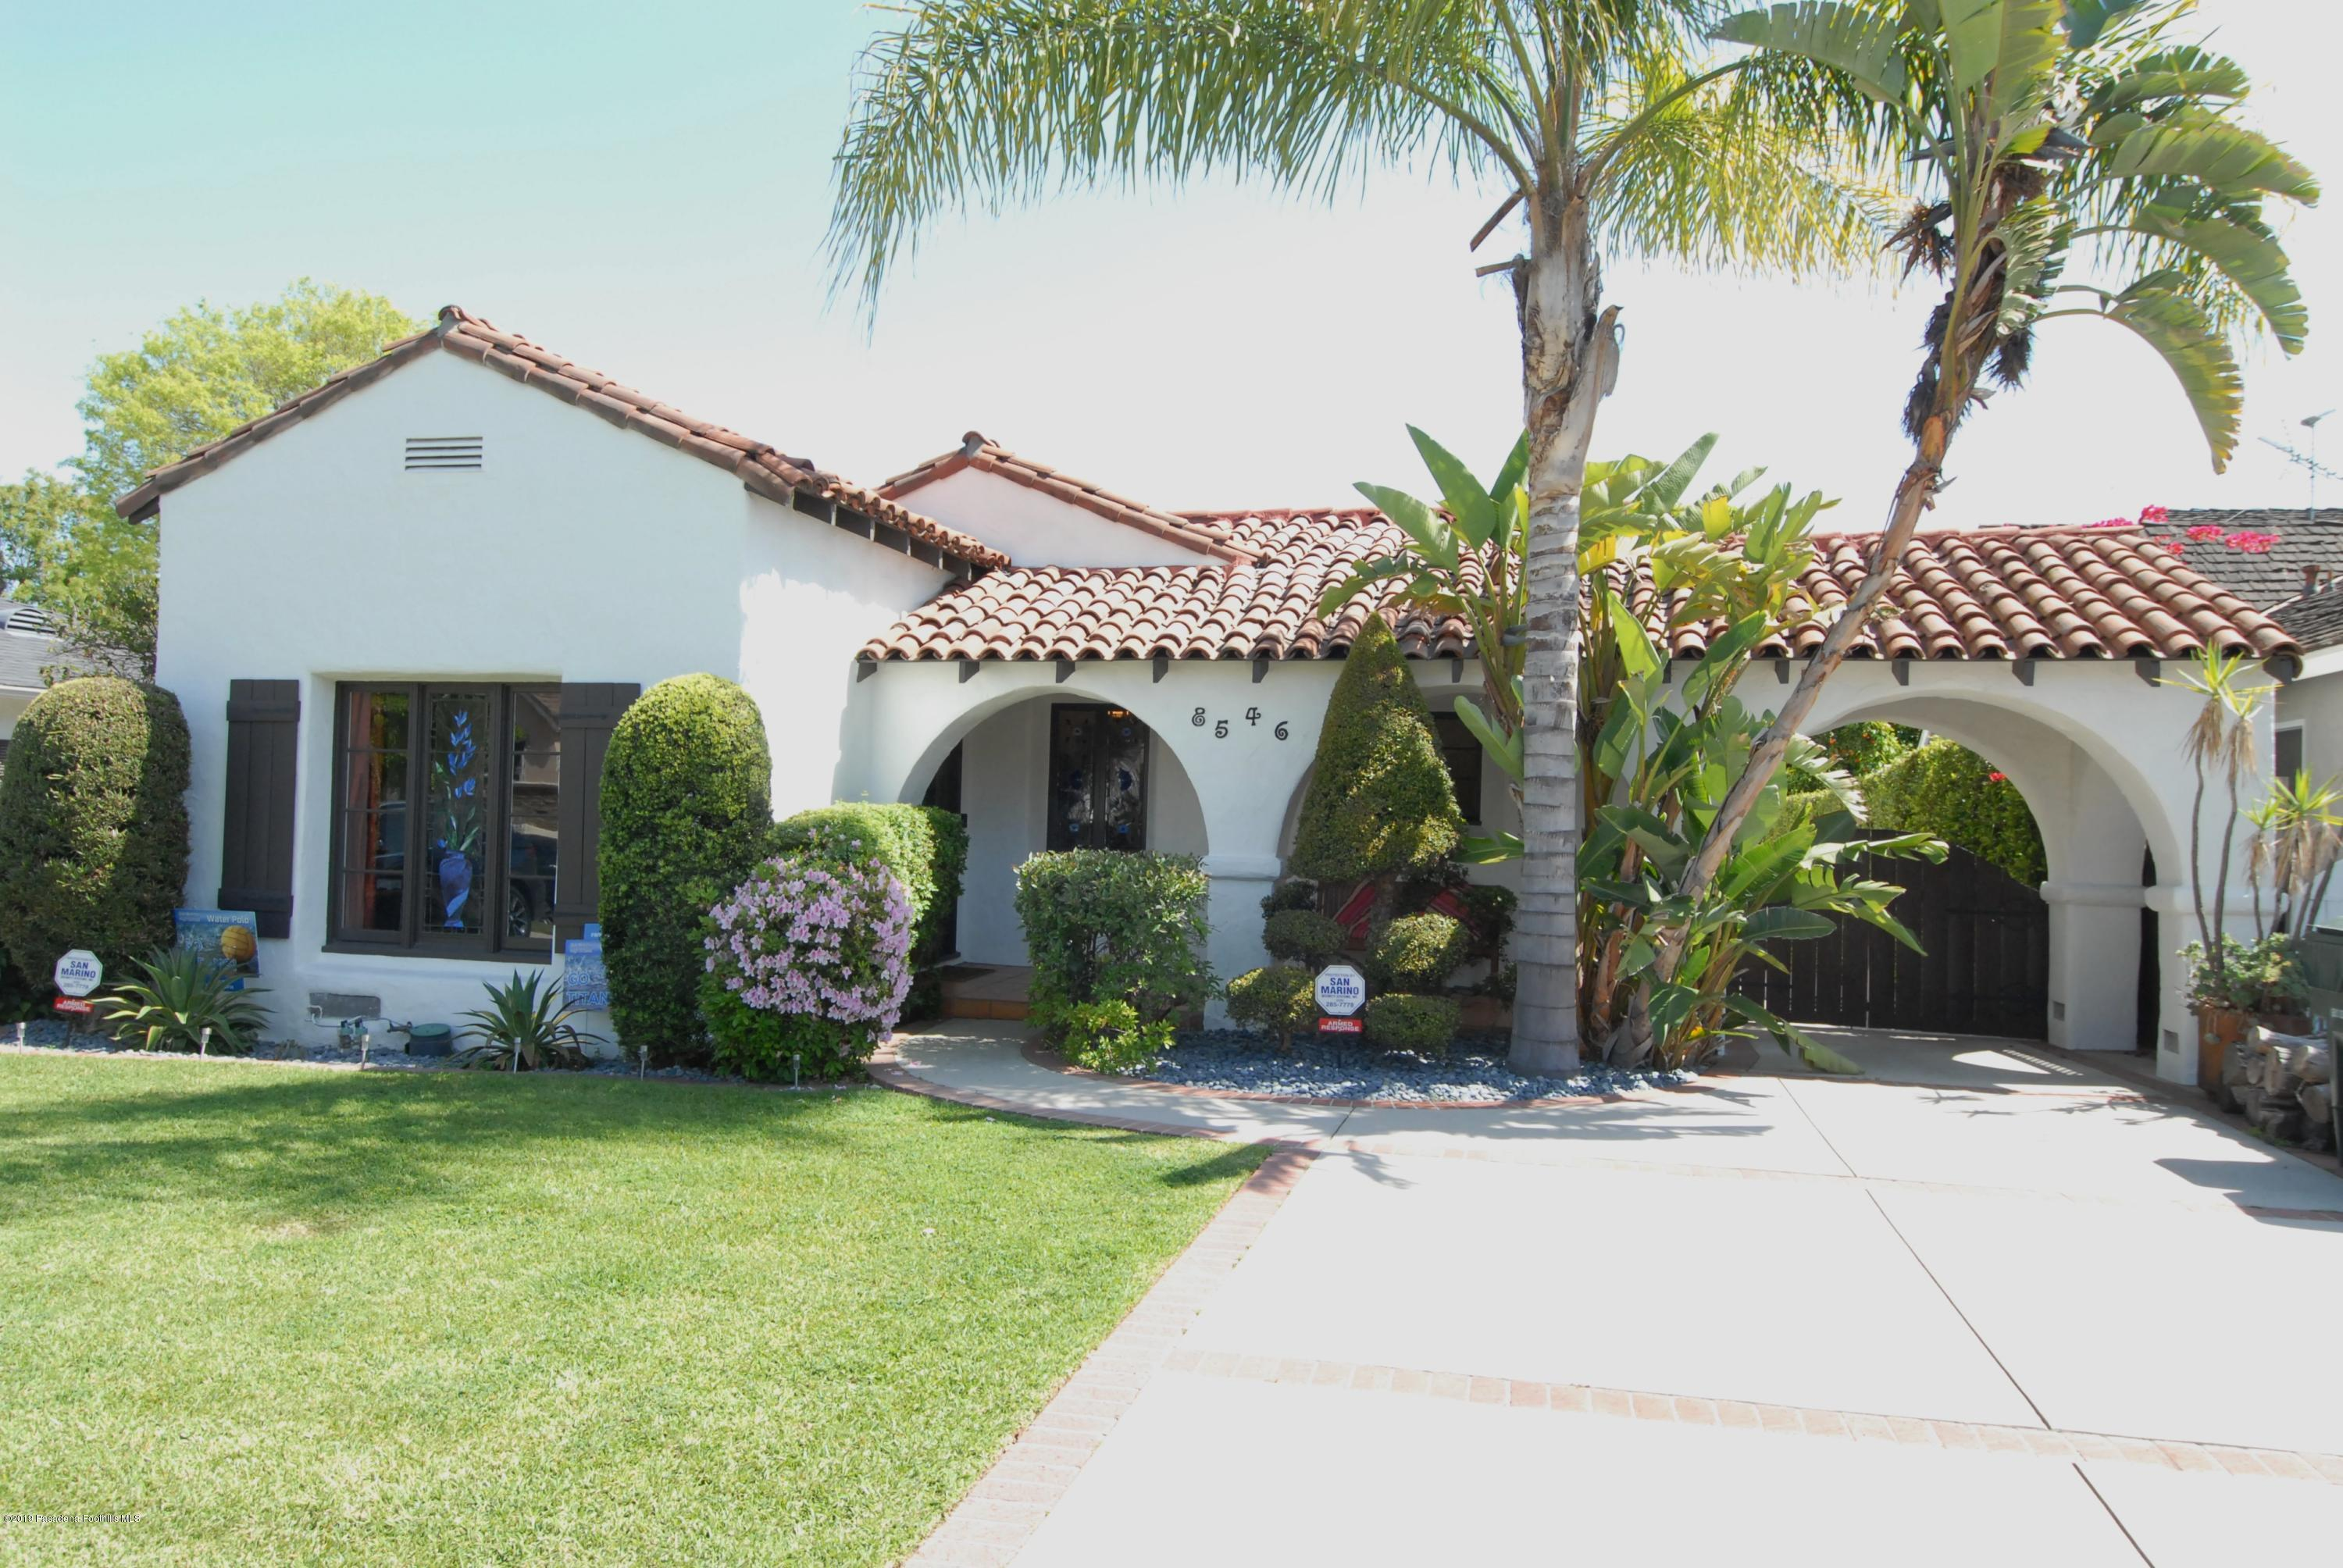 8546 E Lorain Road, one of homes for sale in San Gabriel